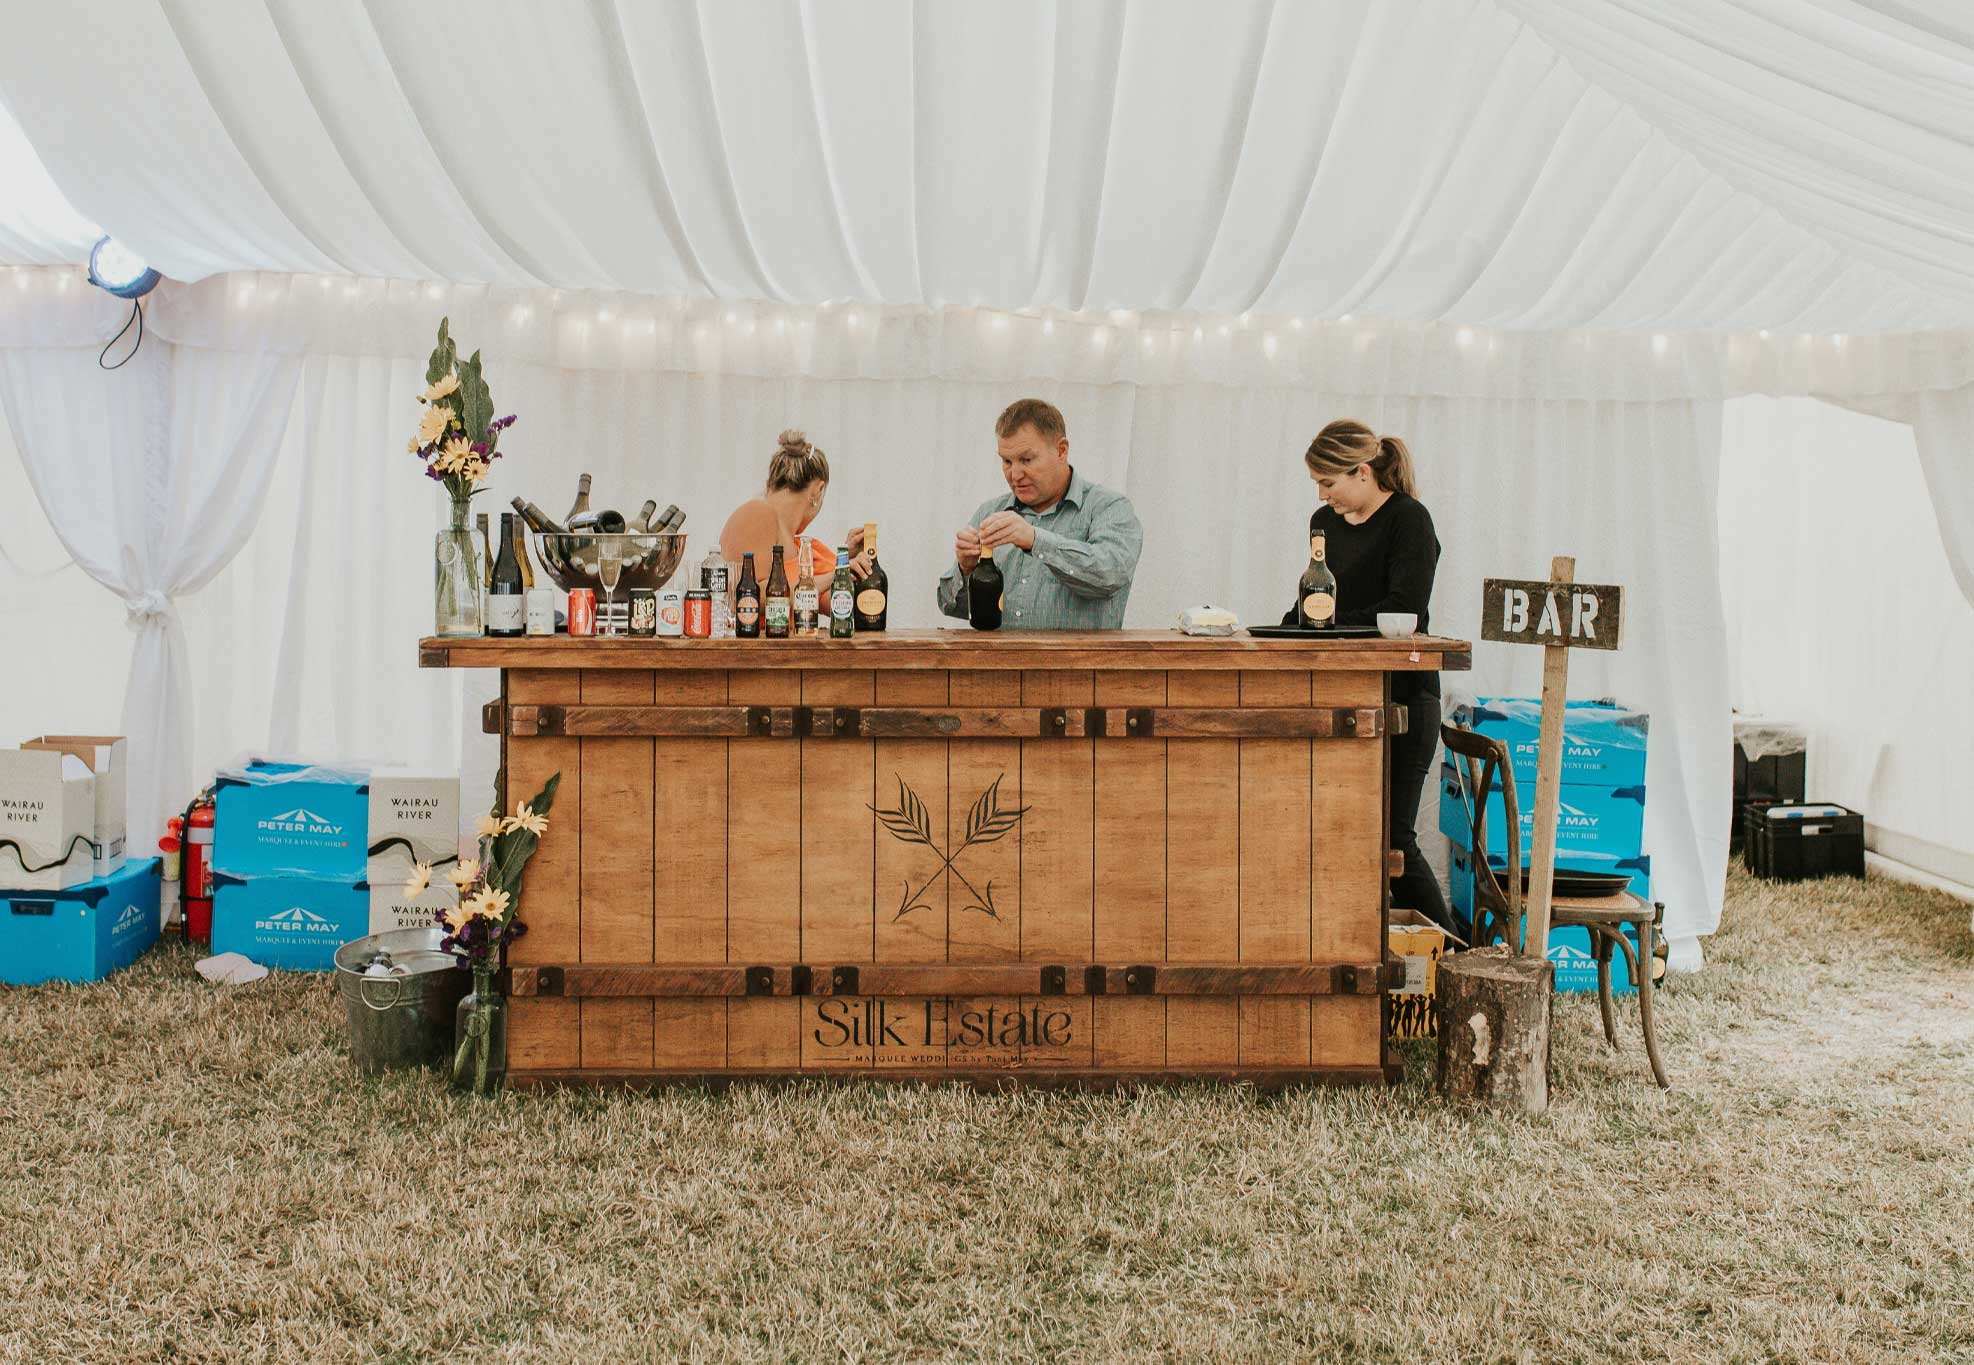 silk-estate-marquee-weddings-and-events-styling-and-hire-furniture-bar-woolpress